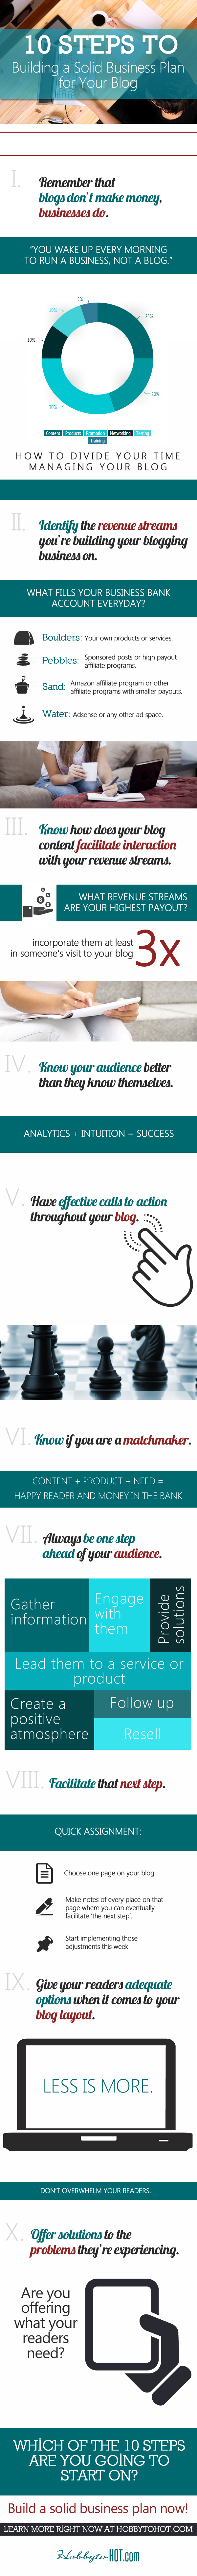 Making-Your-Business-Blog-Successful